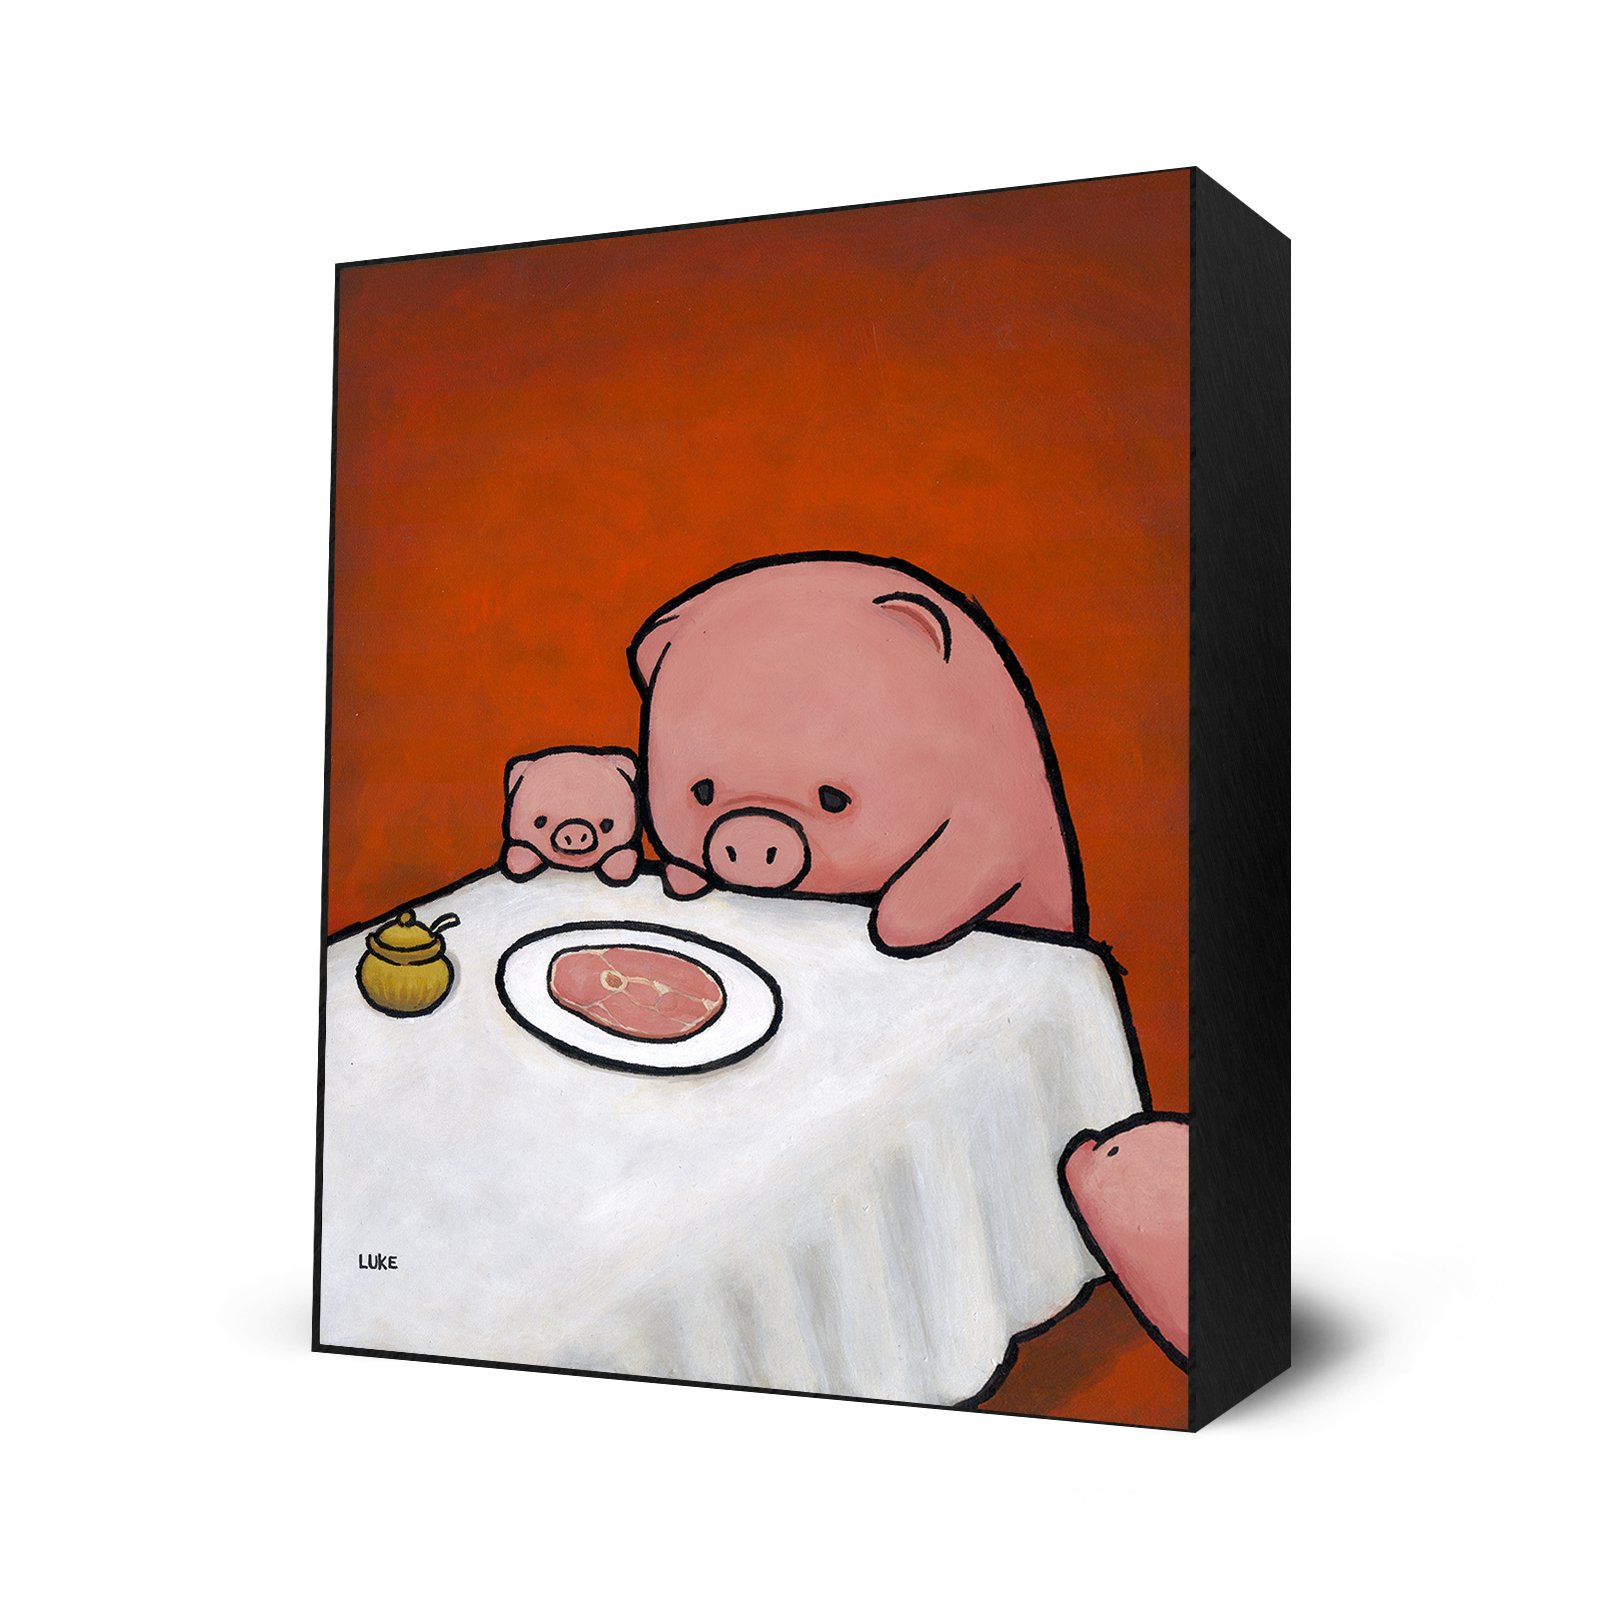 Revenge Is A Dish (Pig) by Eyes On Walls